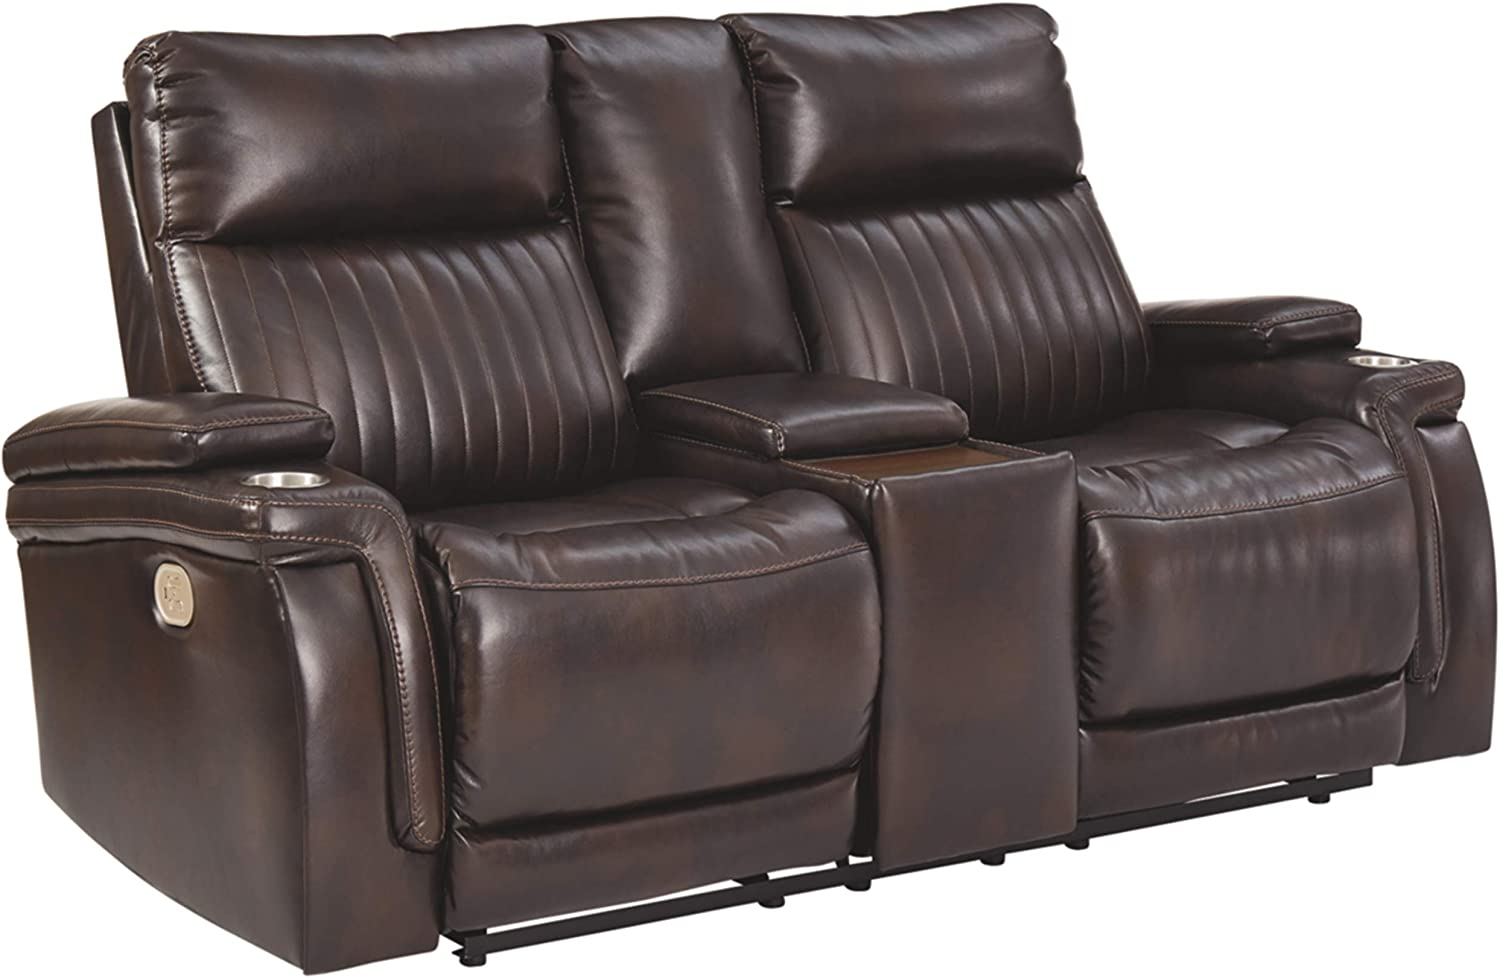 Signature Design by Ashley - Team Time Casual Faux Leather Power Reclining Loveseat - Console - Adjustable Headrest - Dark Brown